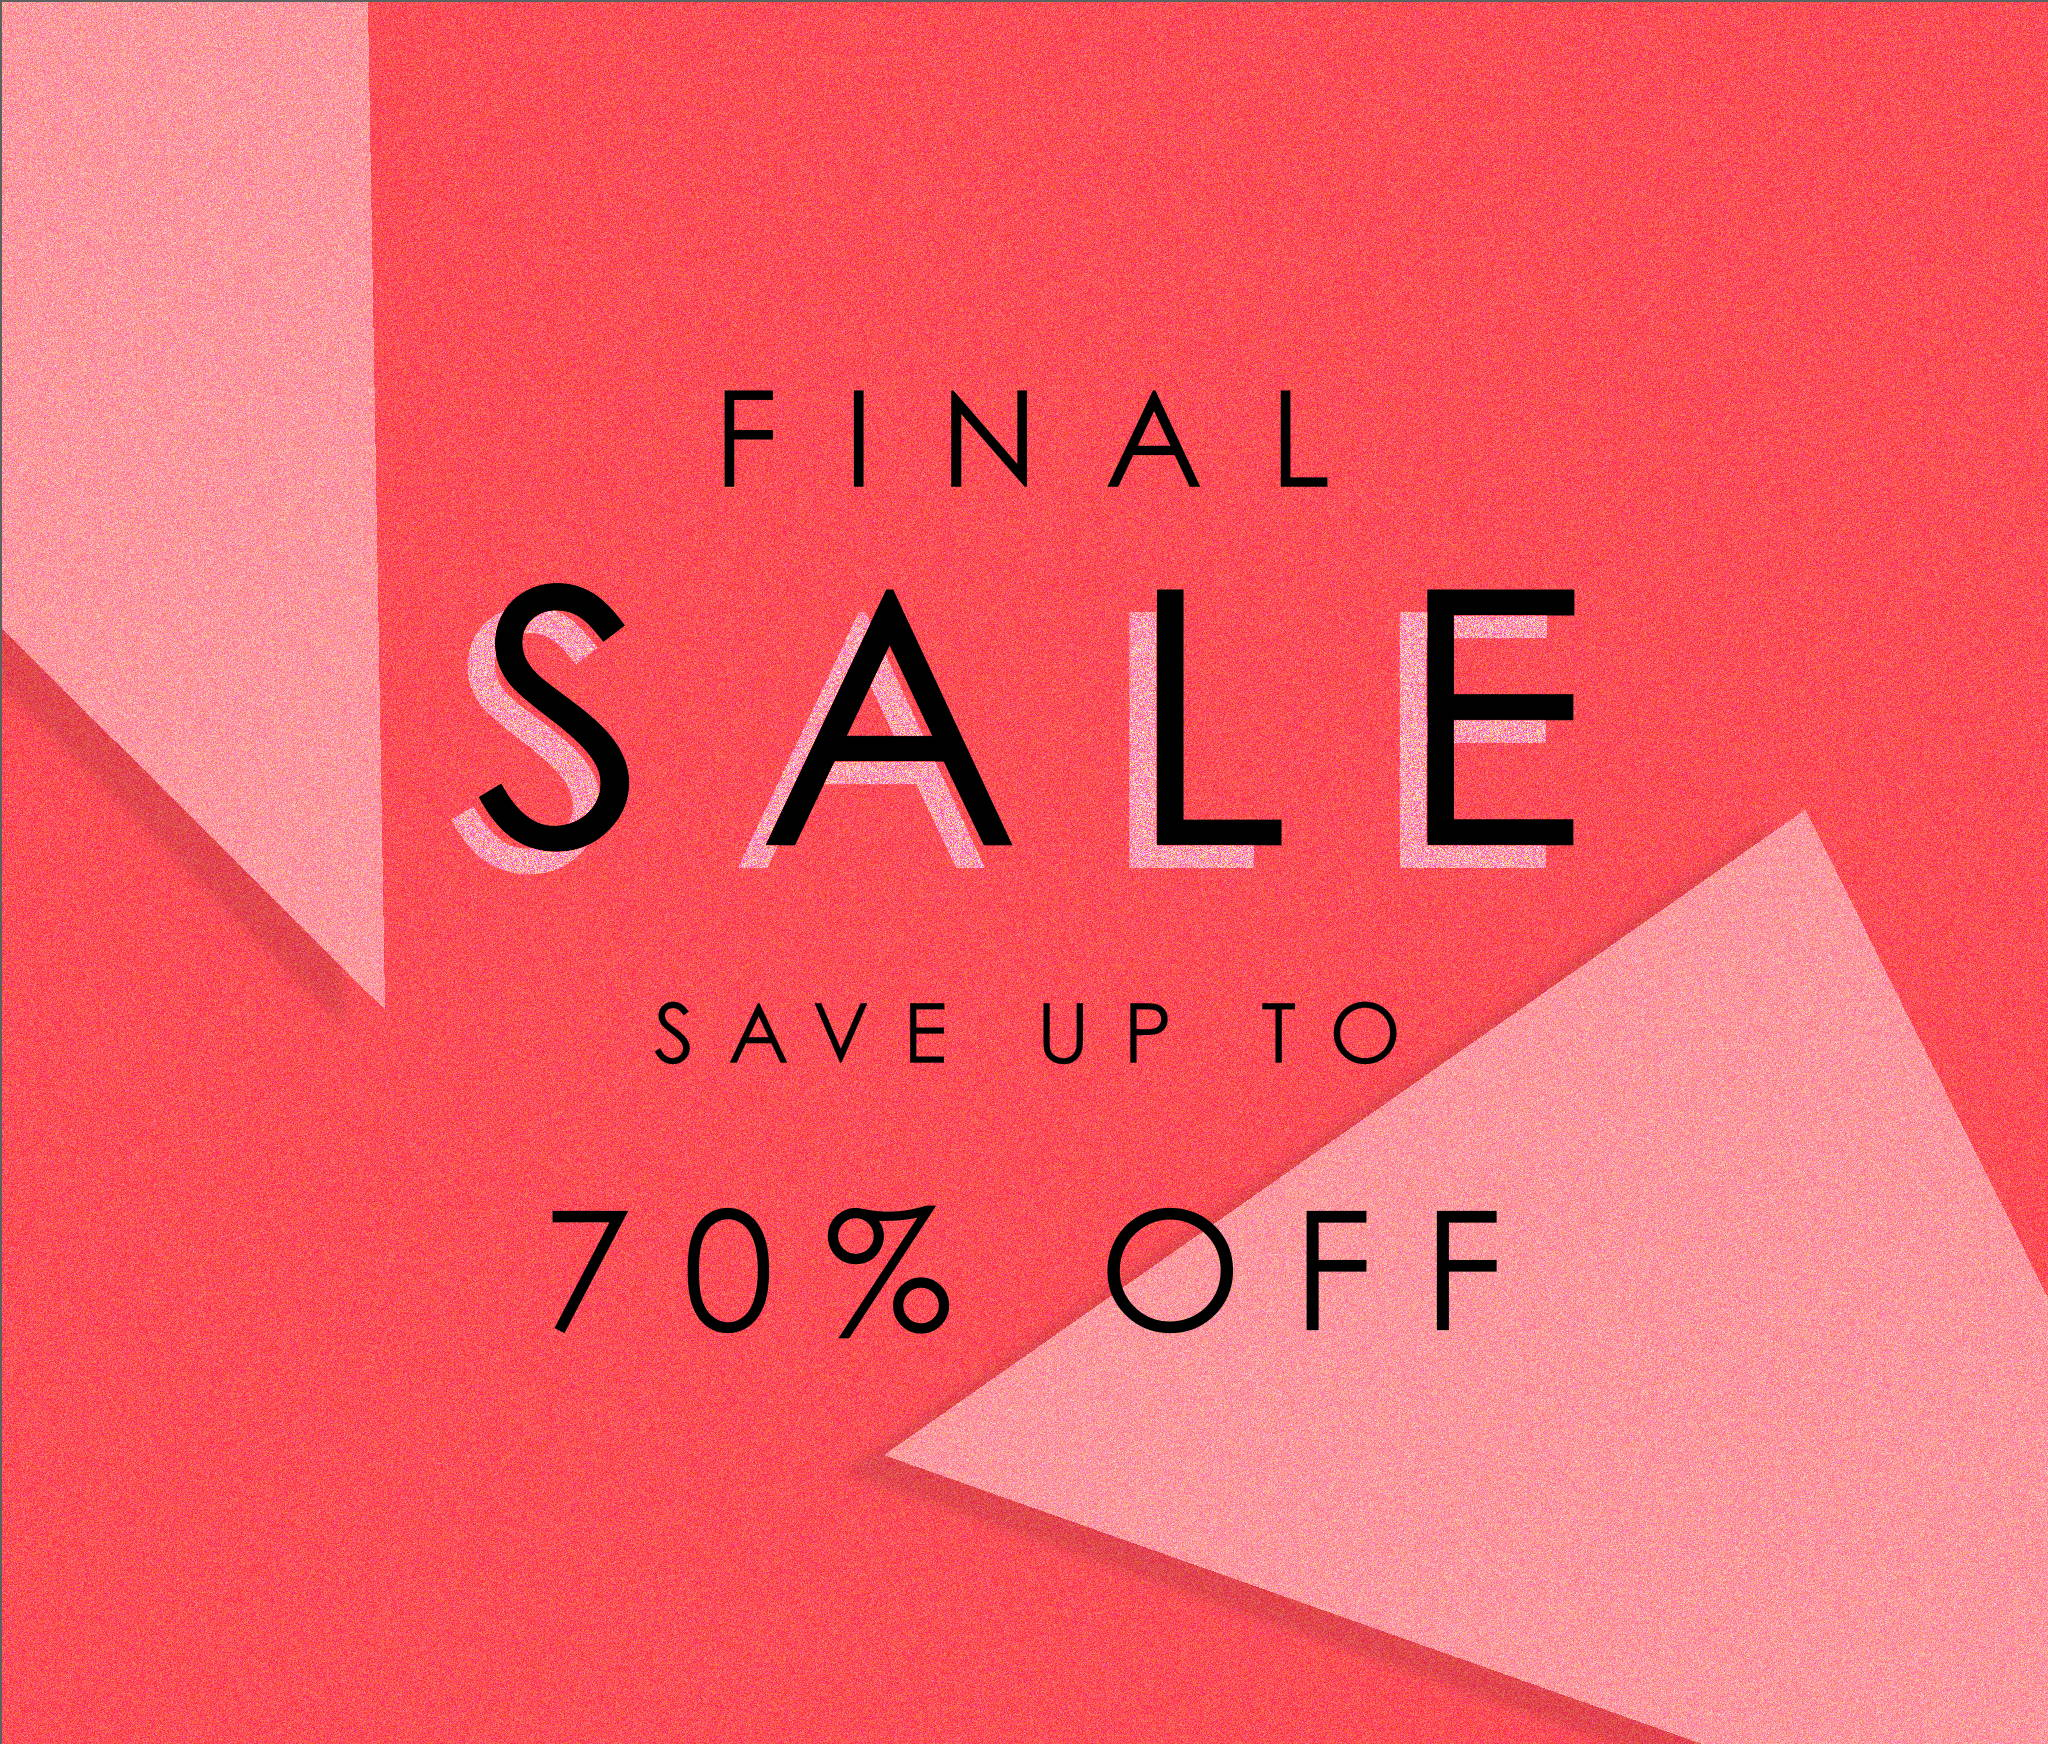 Final Sale - Save Up To 70% Off